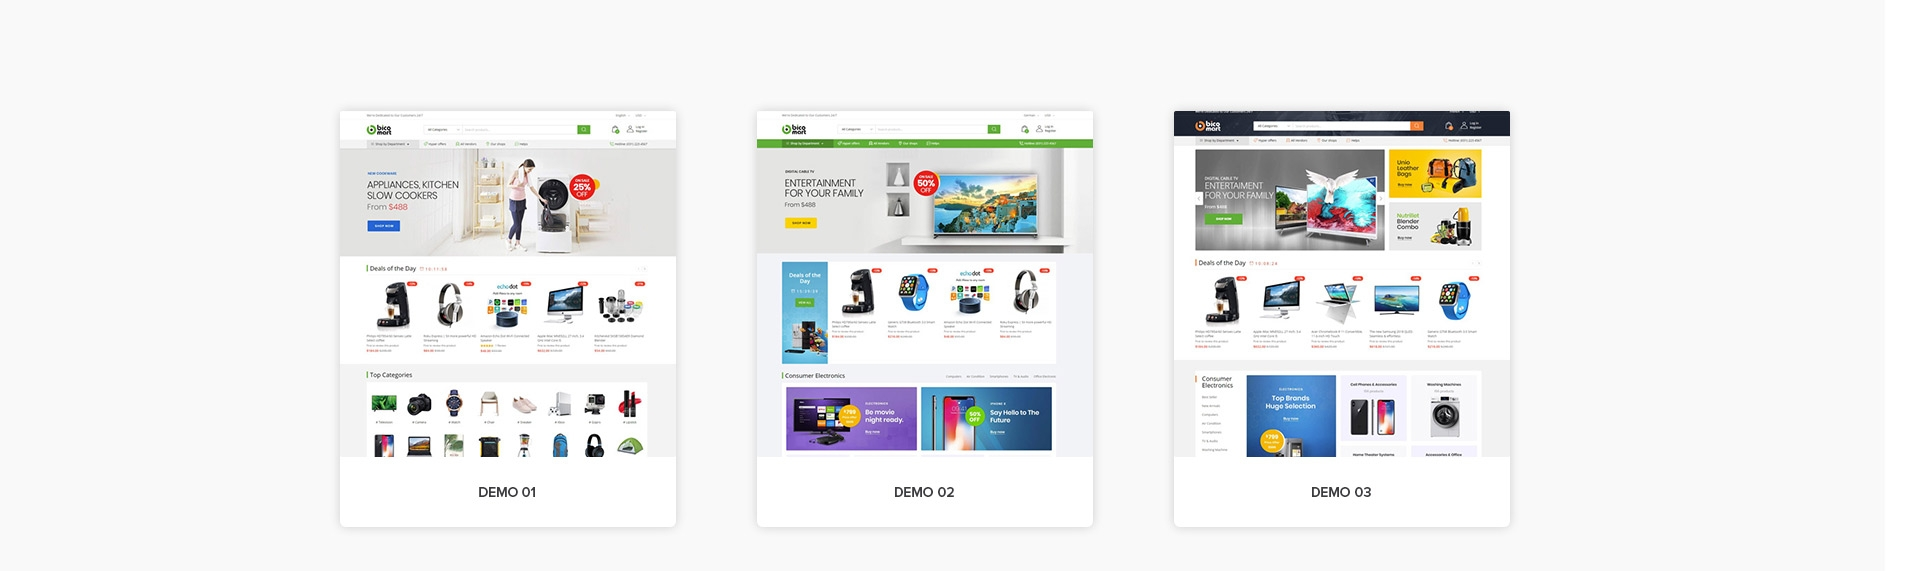 Bicomart Magento 2 Marketplace Theme - 03 Premade Multi Vendor Demos